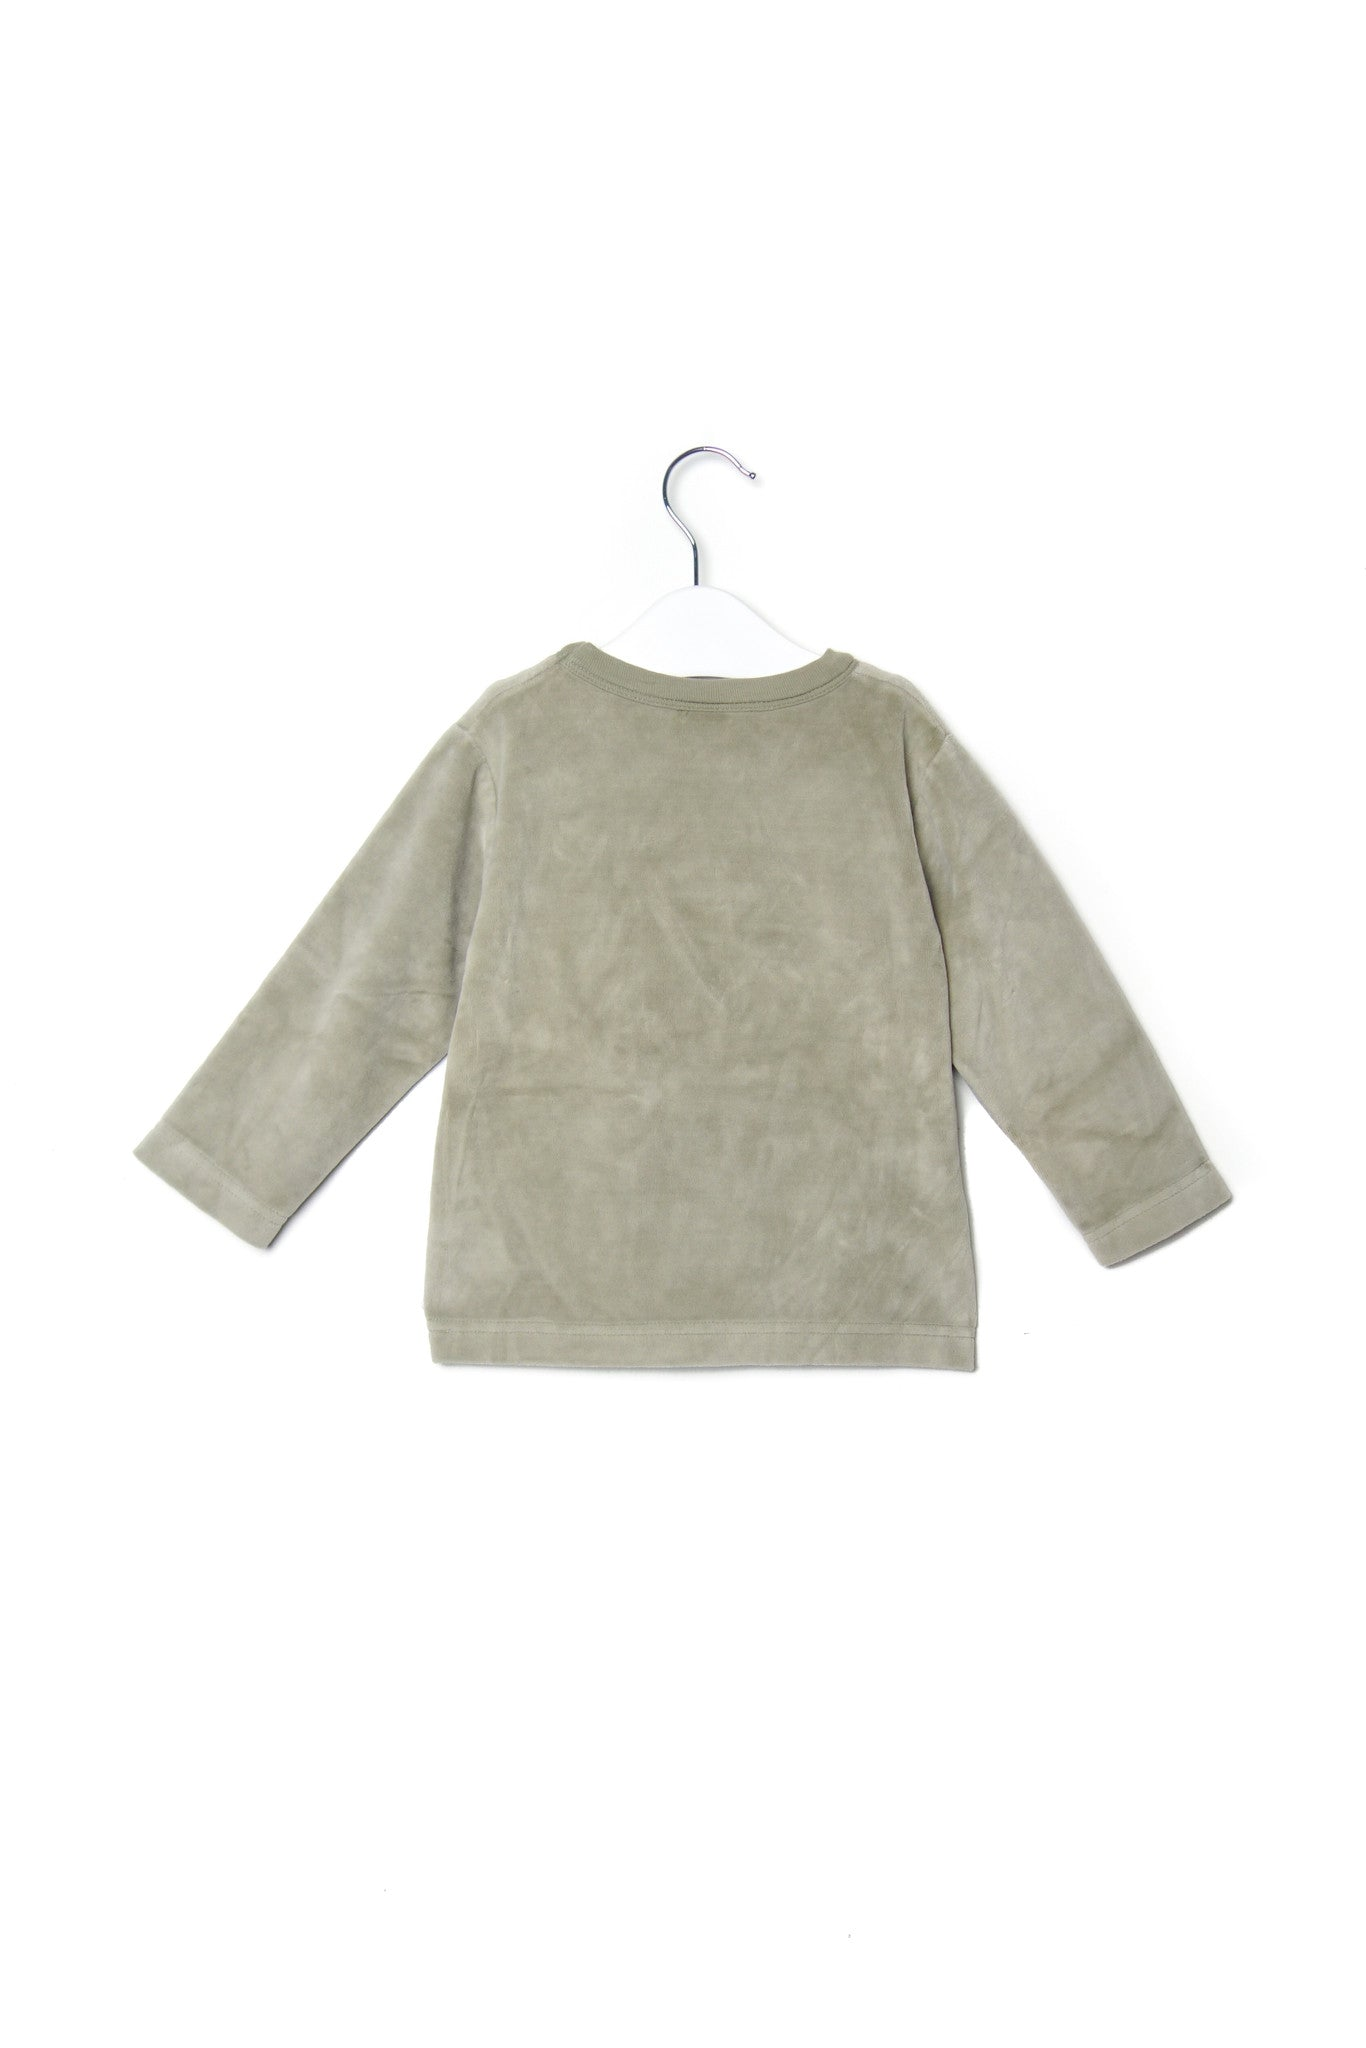 10001877 Petit Bateau Kids~Sweatshirt 2T at Retykle